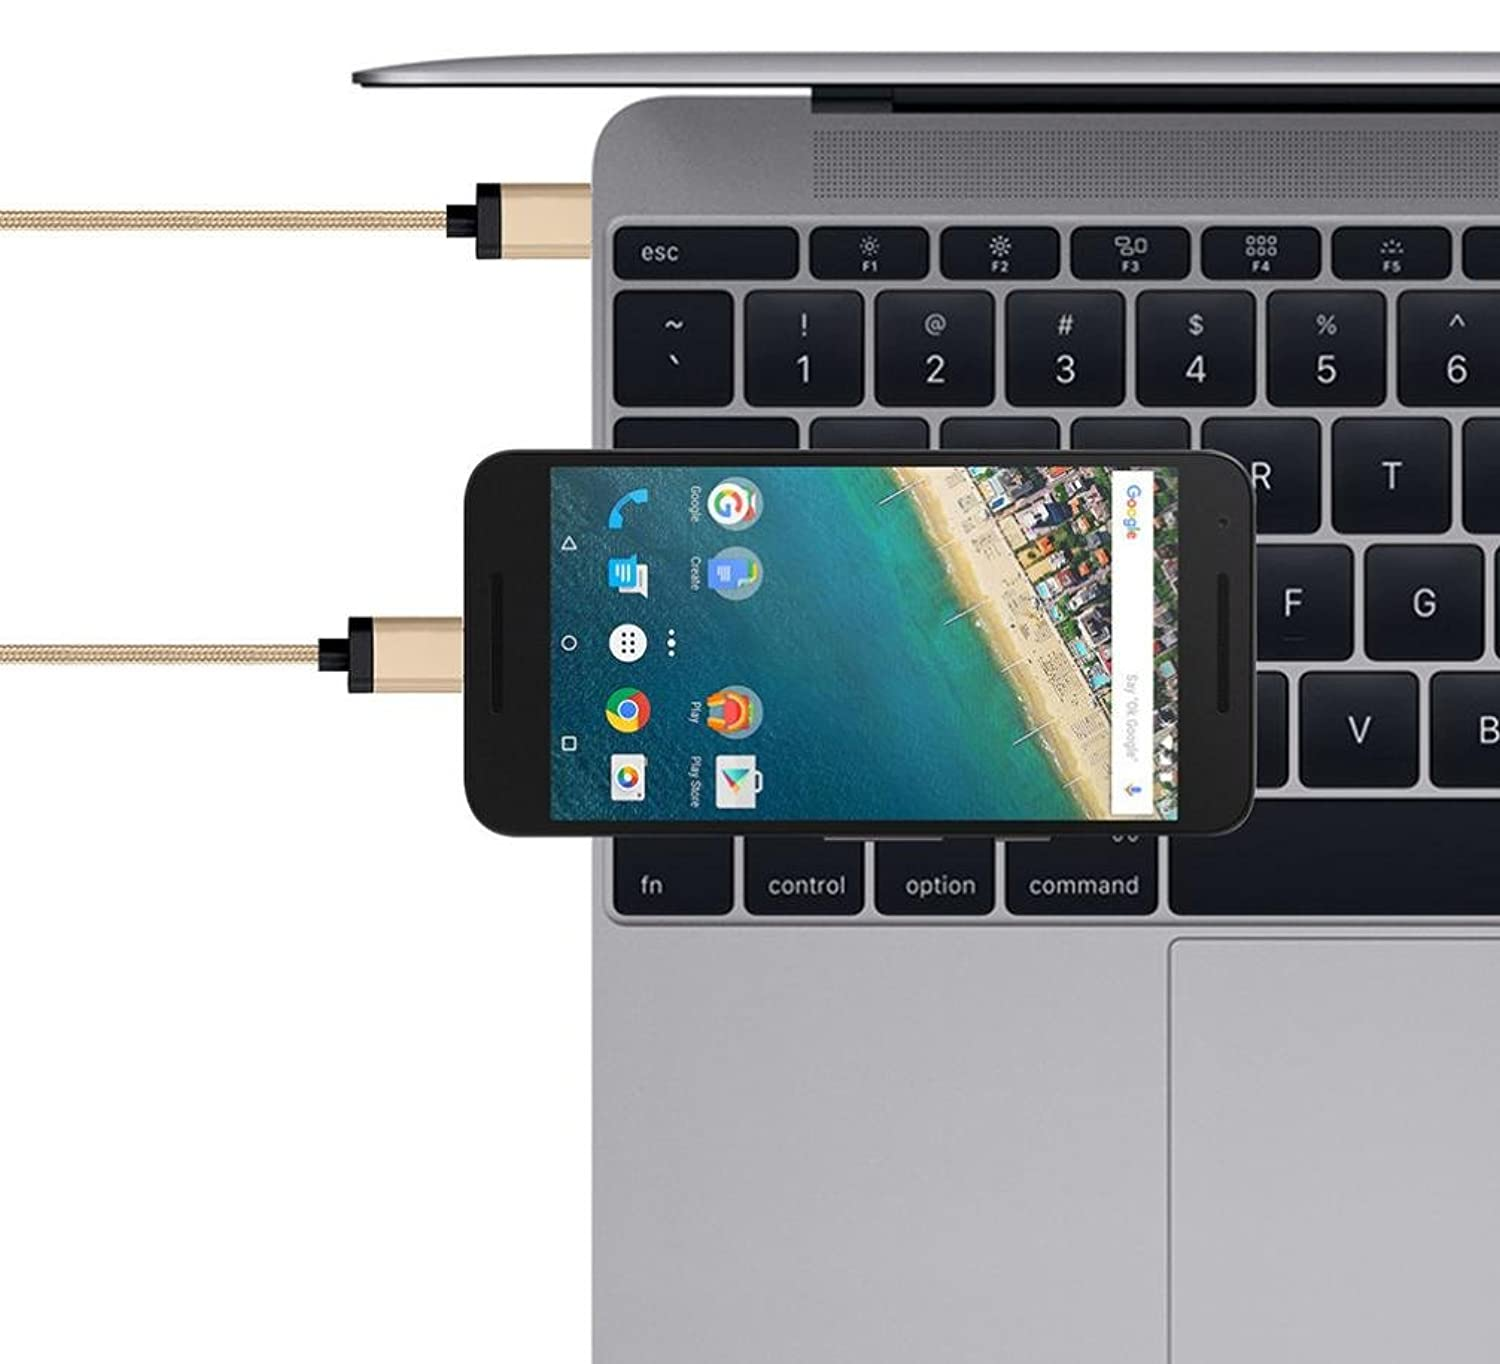 Amazon.com: Mchoice Type-c 2.0 USB Charging Cable Multi-function ...